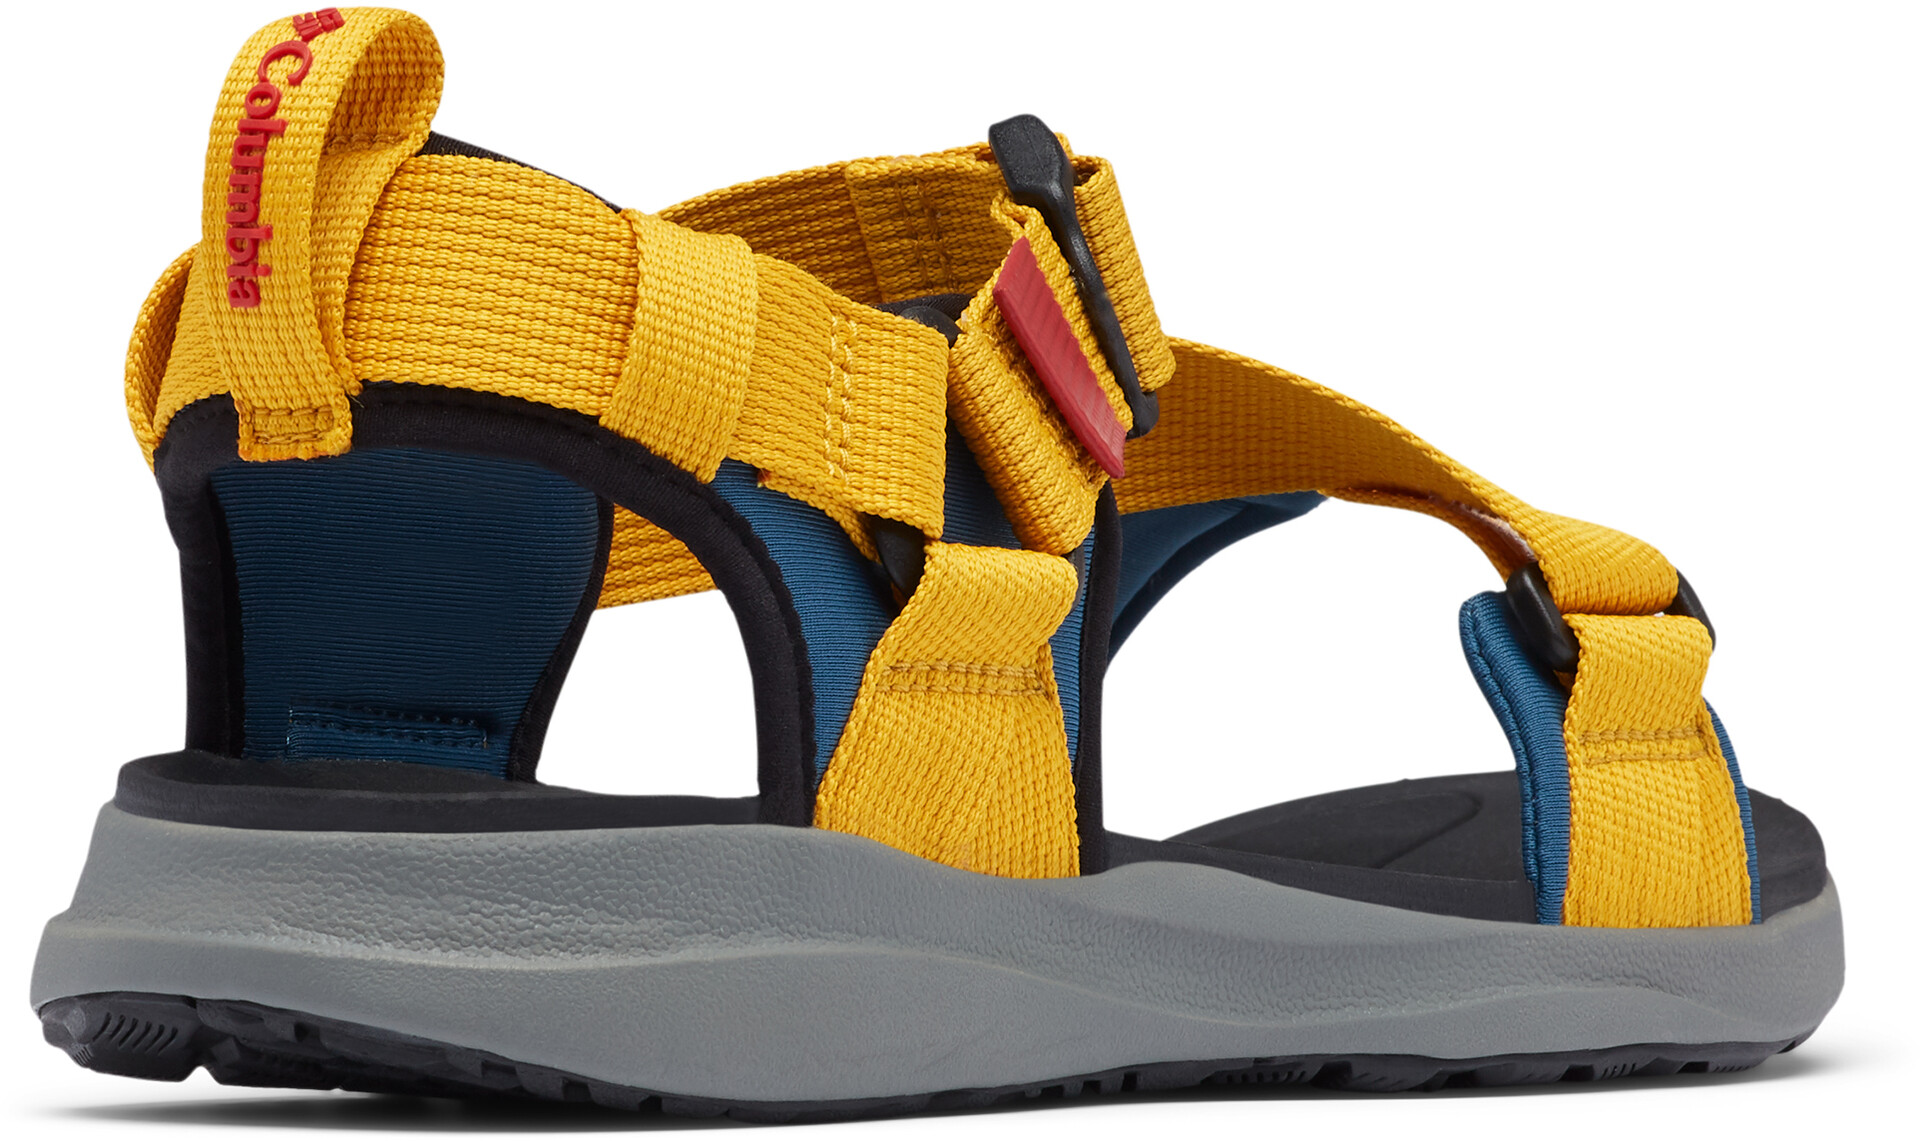 Columbia Sandalen Herren petrol bluegolden yellow